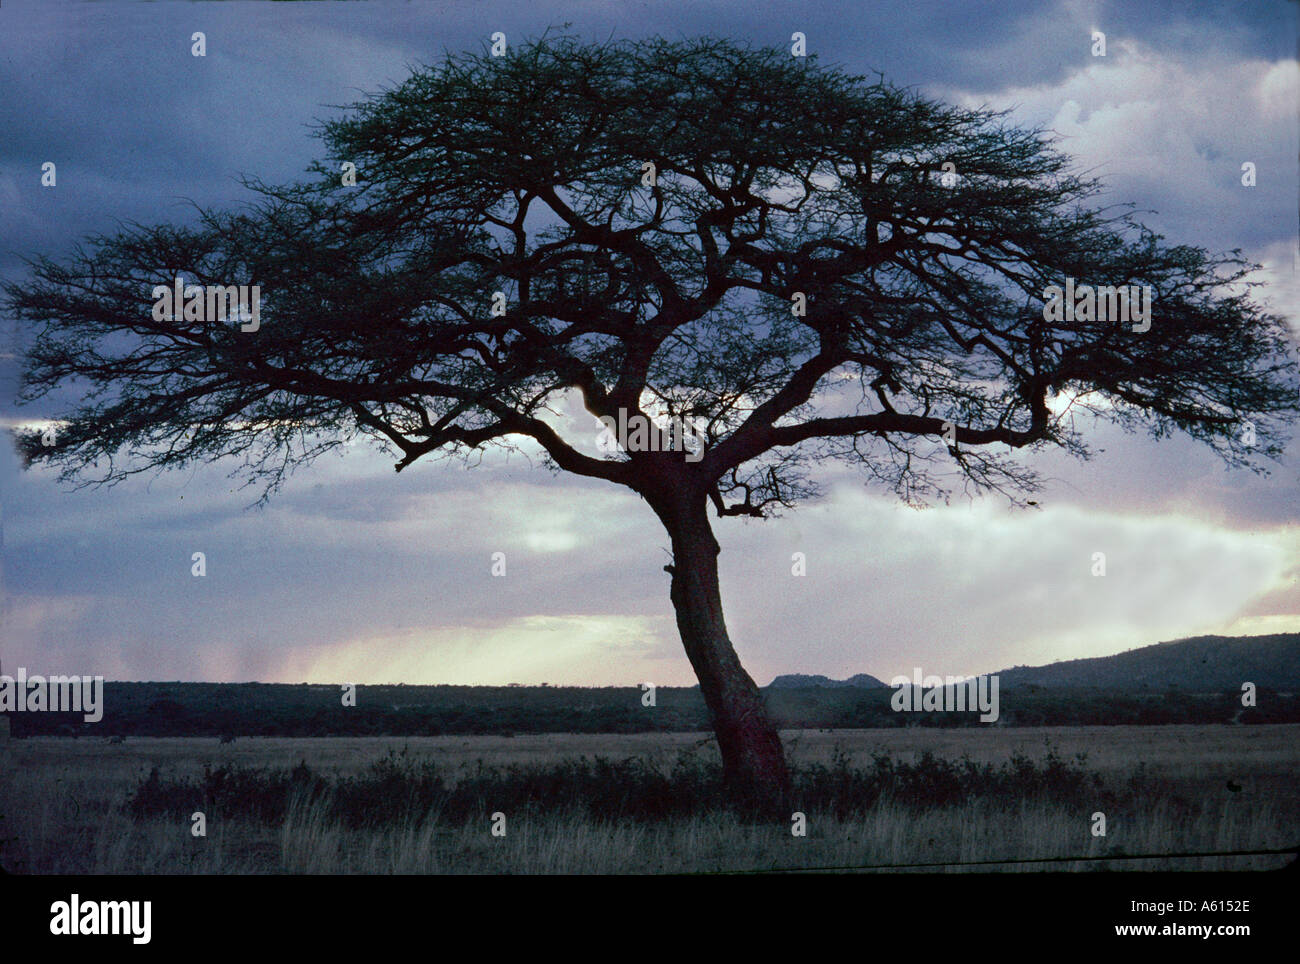 Lone Acacia Tree on Serengetti Plain at dusk - Stock Image